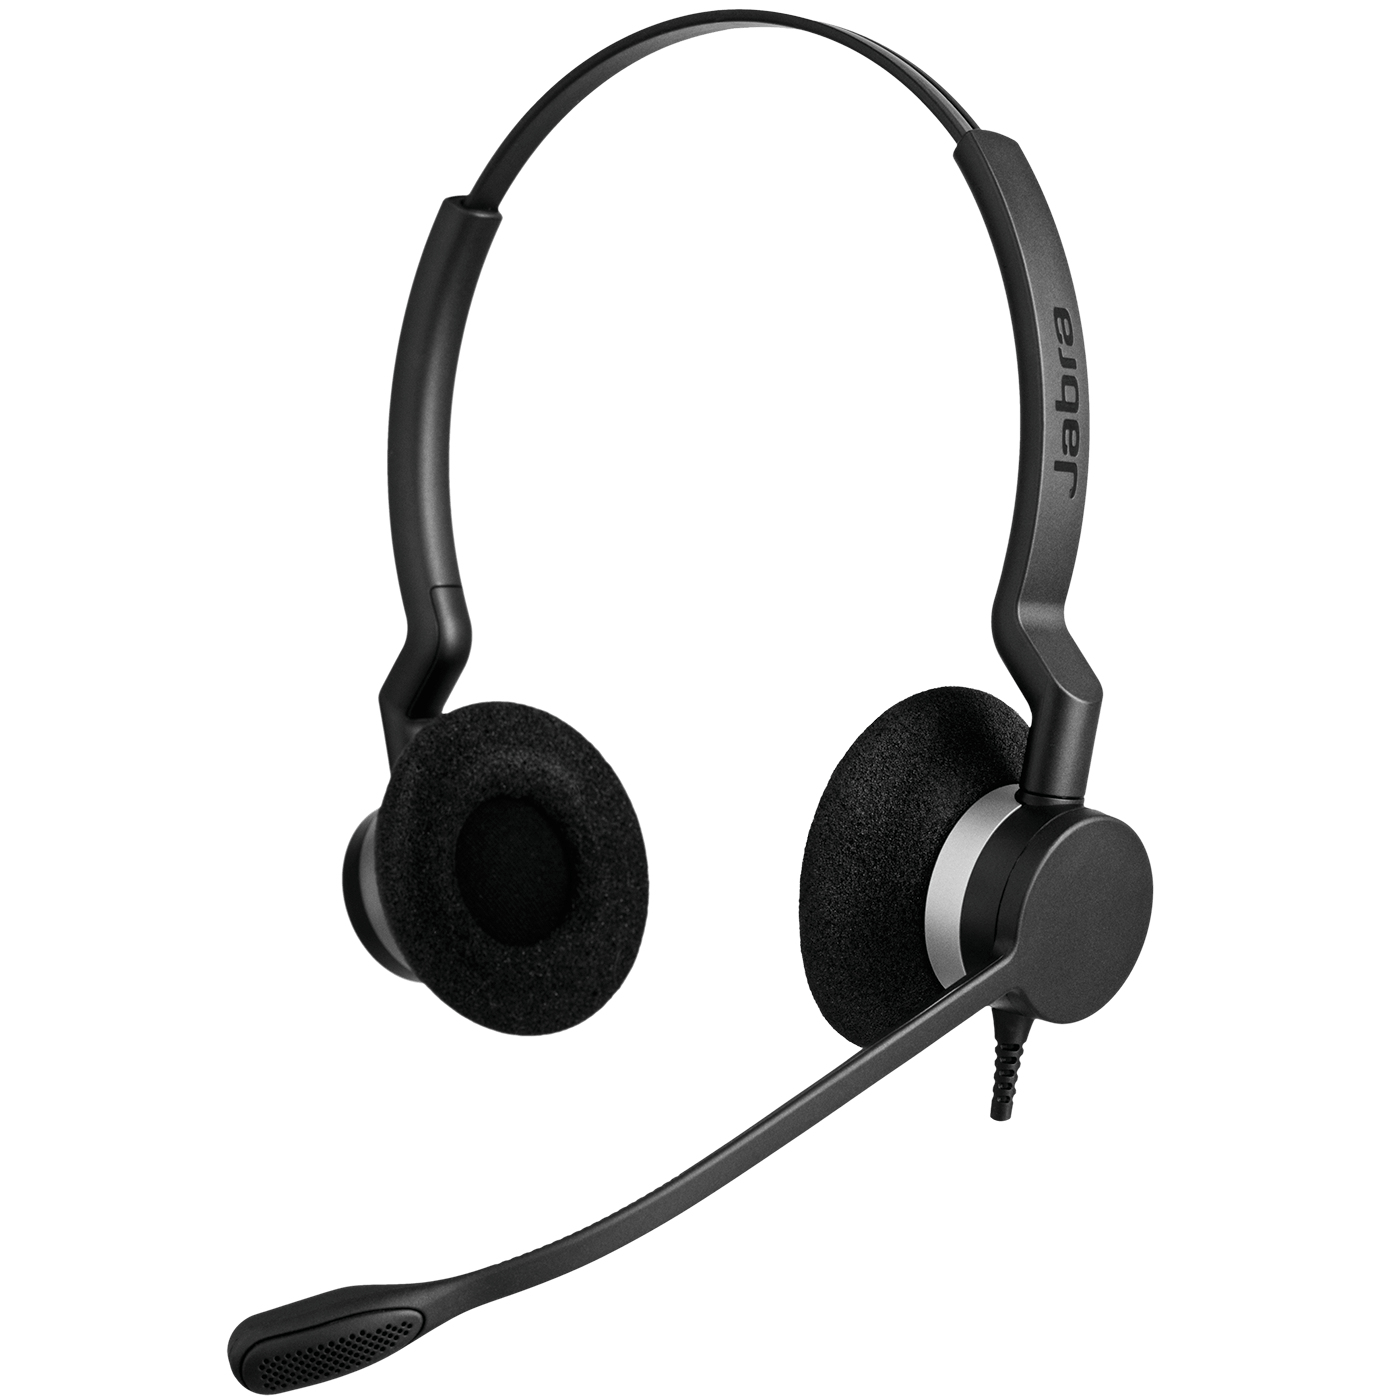 Jabra 2300 Binaural Head-band Black